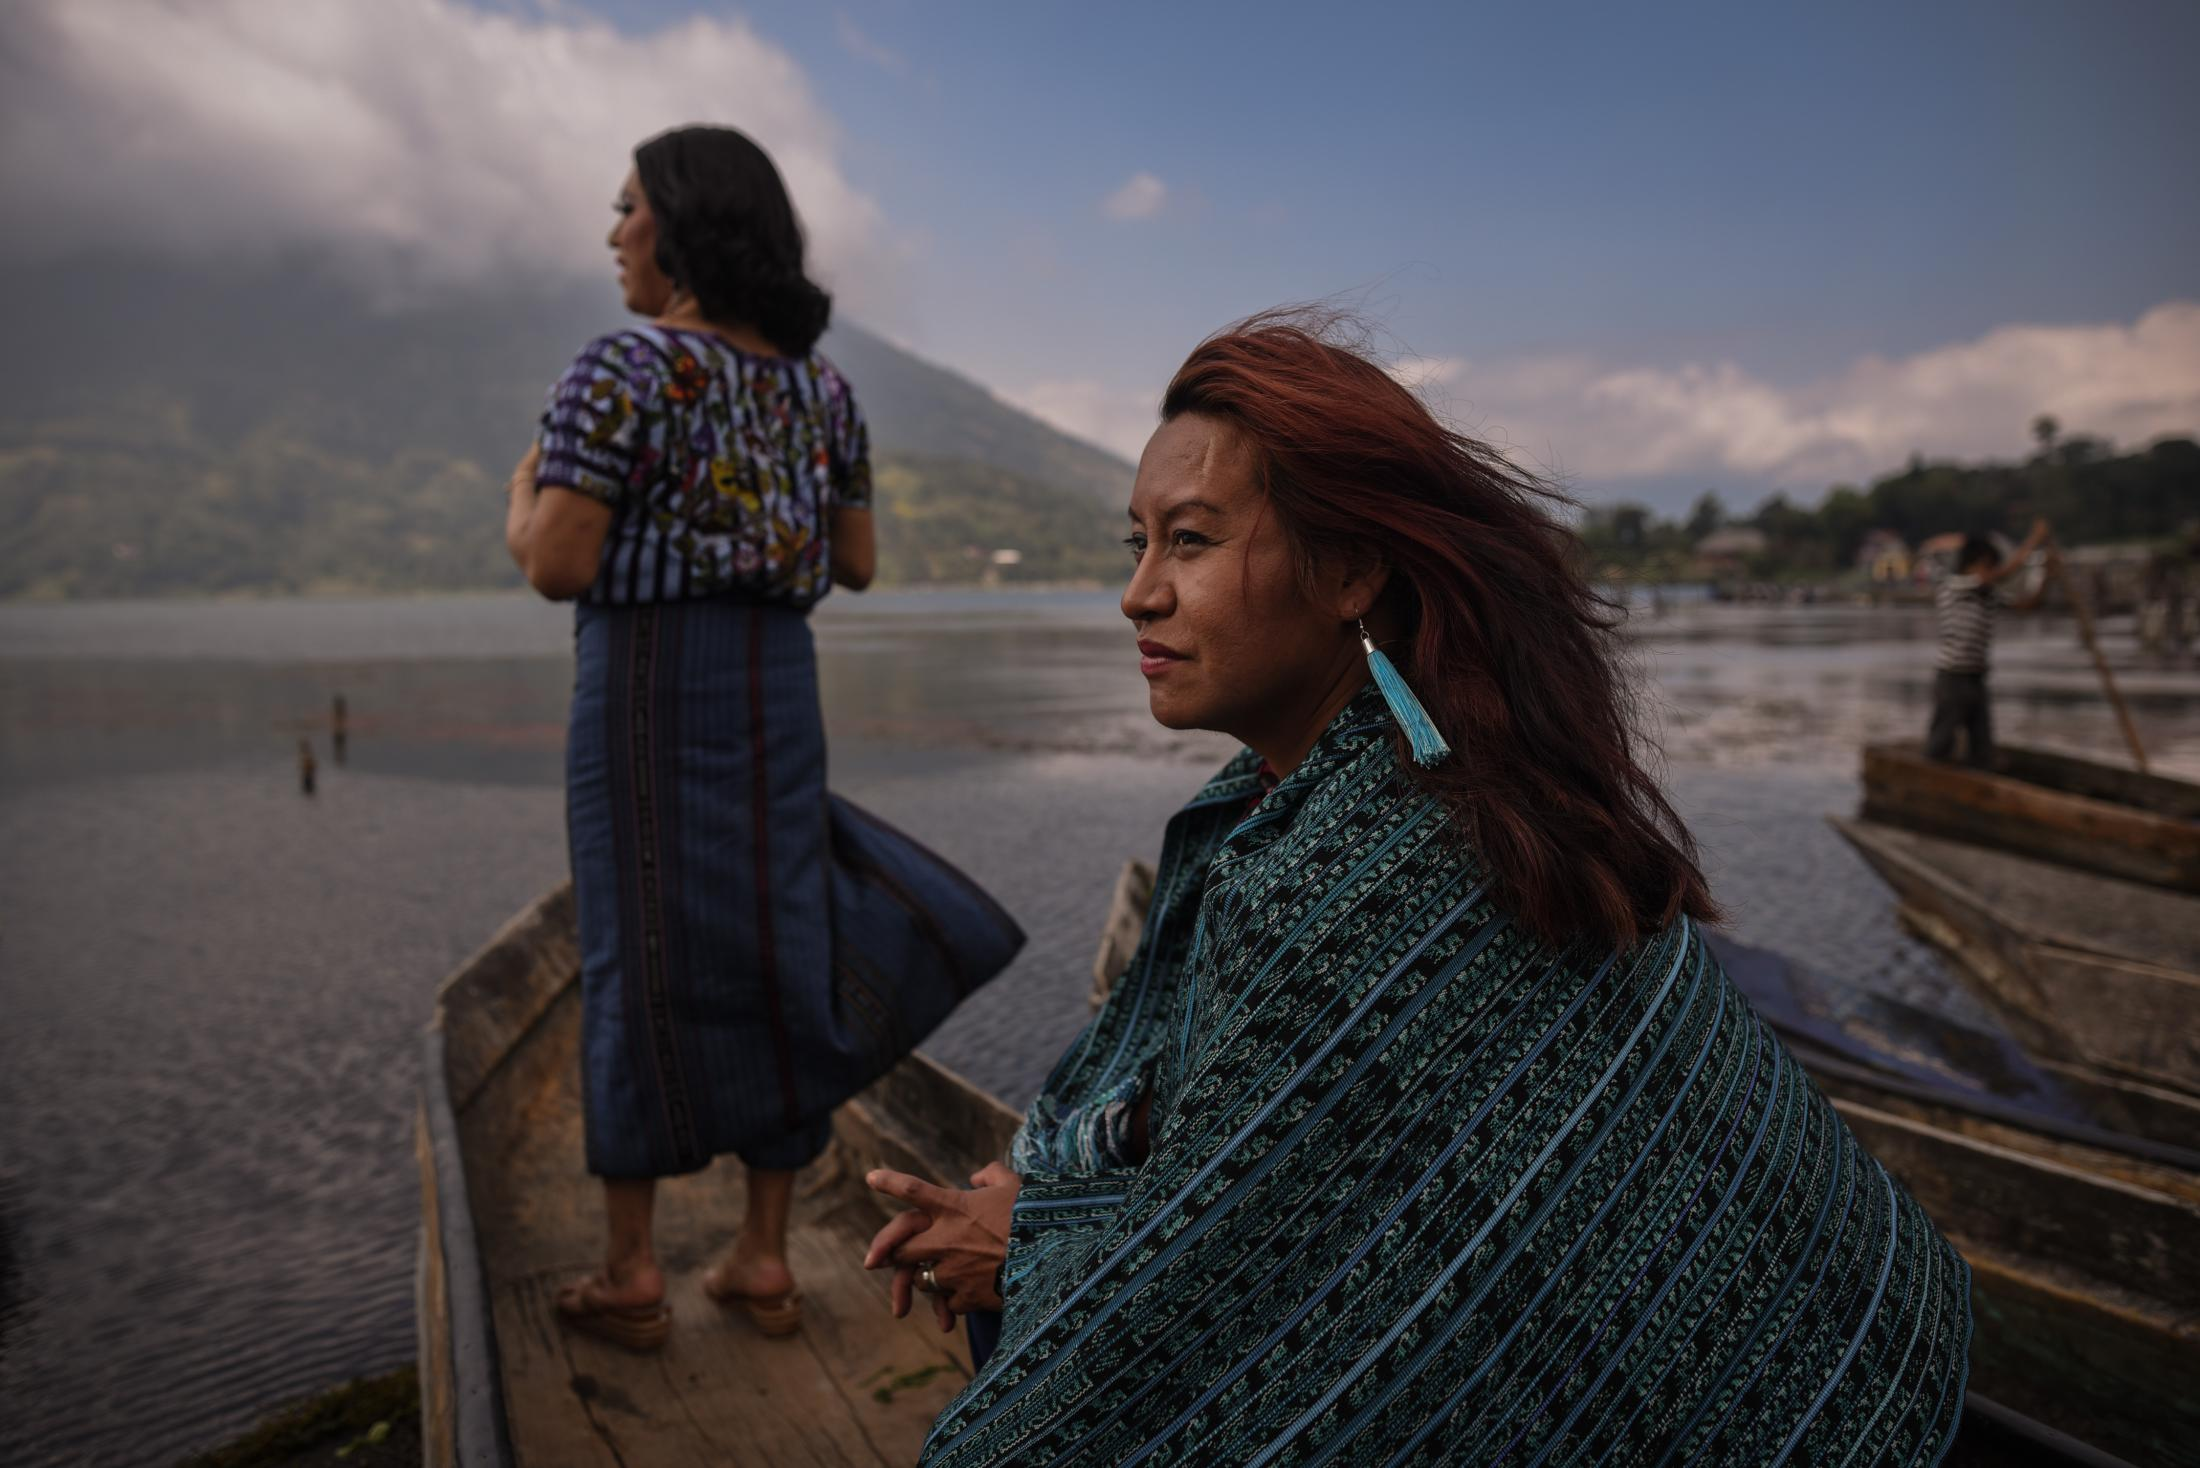 November 20, 2019. Santiago Atitlán, Guatemala. Portrait of Maria Alejandra and Kristel, two transgender women of origin Tz'utujil, observe Lake Atitlan during a sunny day. One day, while they were still little indigenous children walking through their village, China noticed a scar on the Kristel's back and asked, Kris respons her that her dad had hit her with a wire because he didn't want him to play with homosexuals.